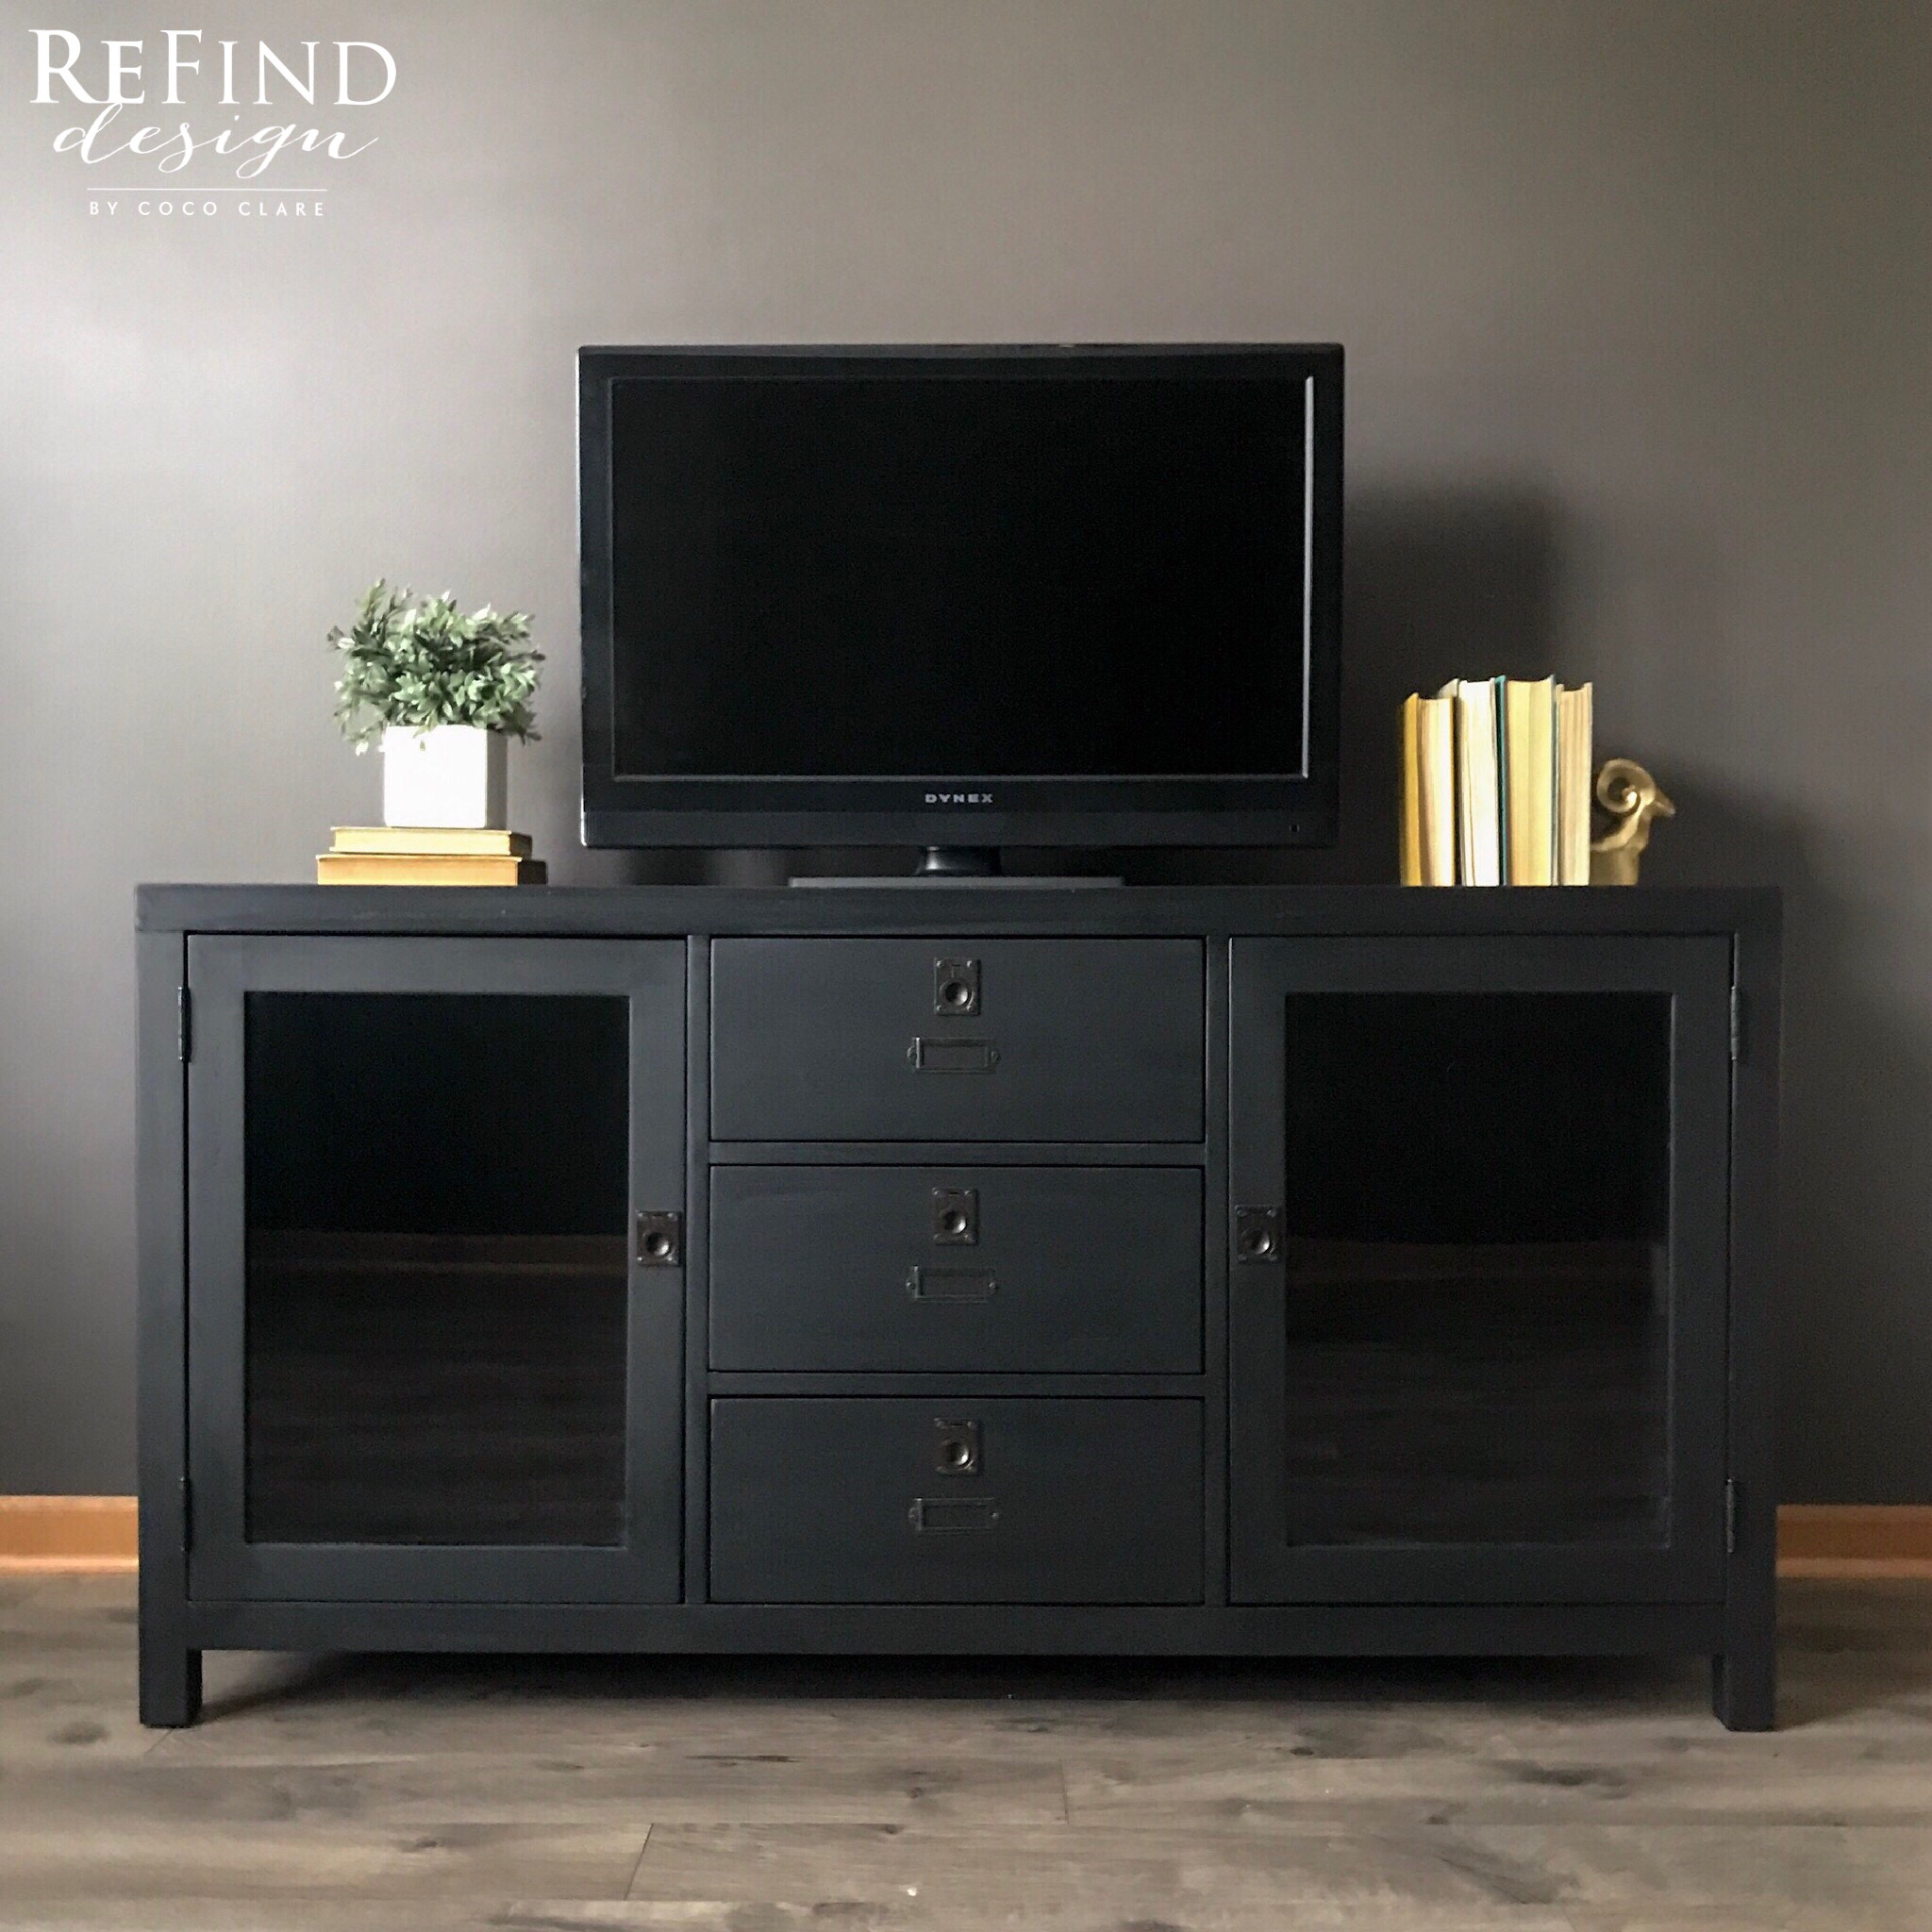 pottery barn entertainment center general finishes 2018 design challenge. Black Bedroom Furniture Sets. Home Design Ideas